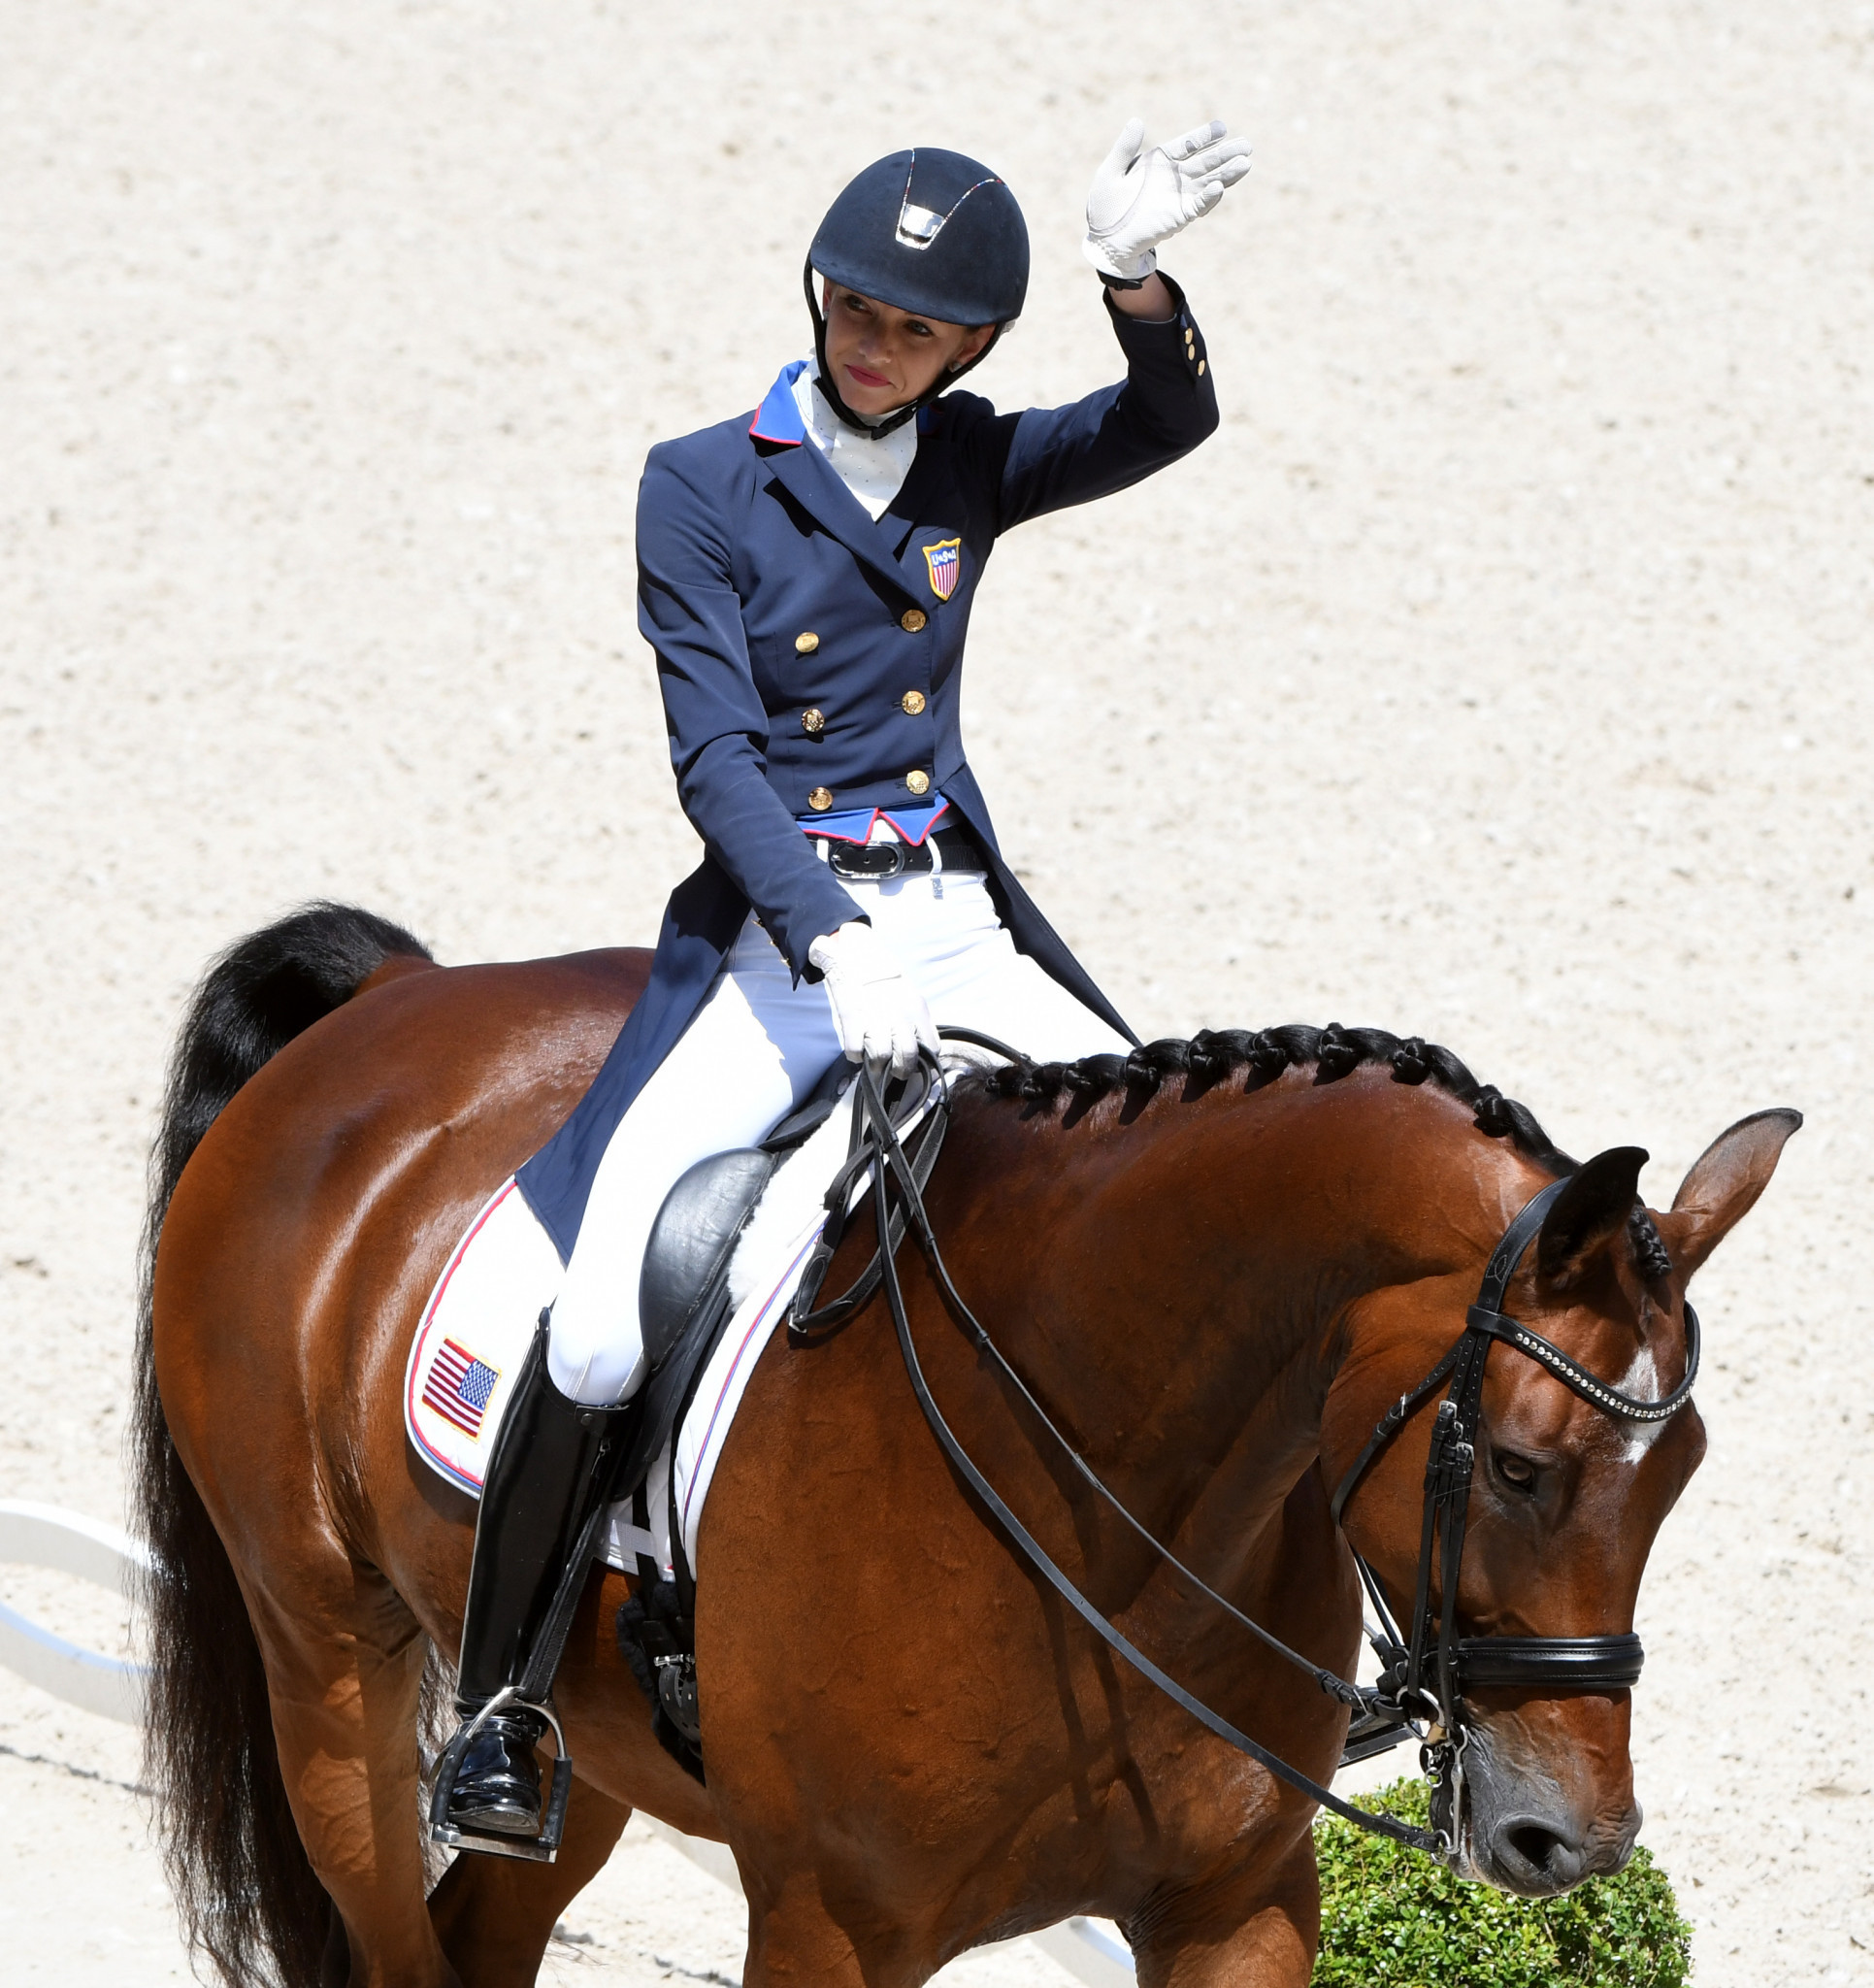 Laura Graves produced a personal best in the Dressage World Cup at Paris but still had to settle for another silver ©FEI